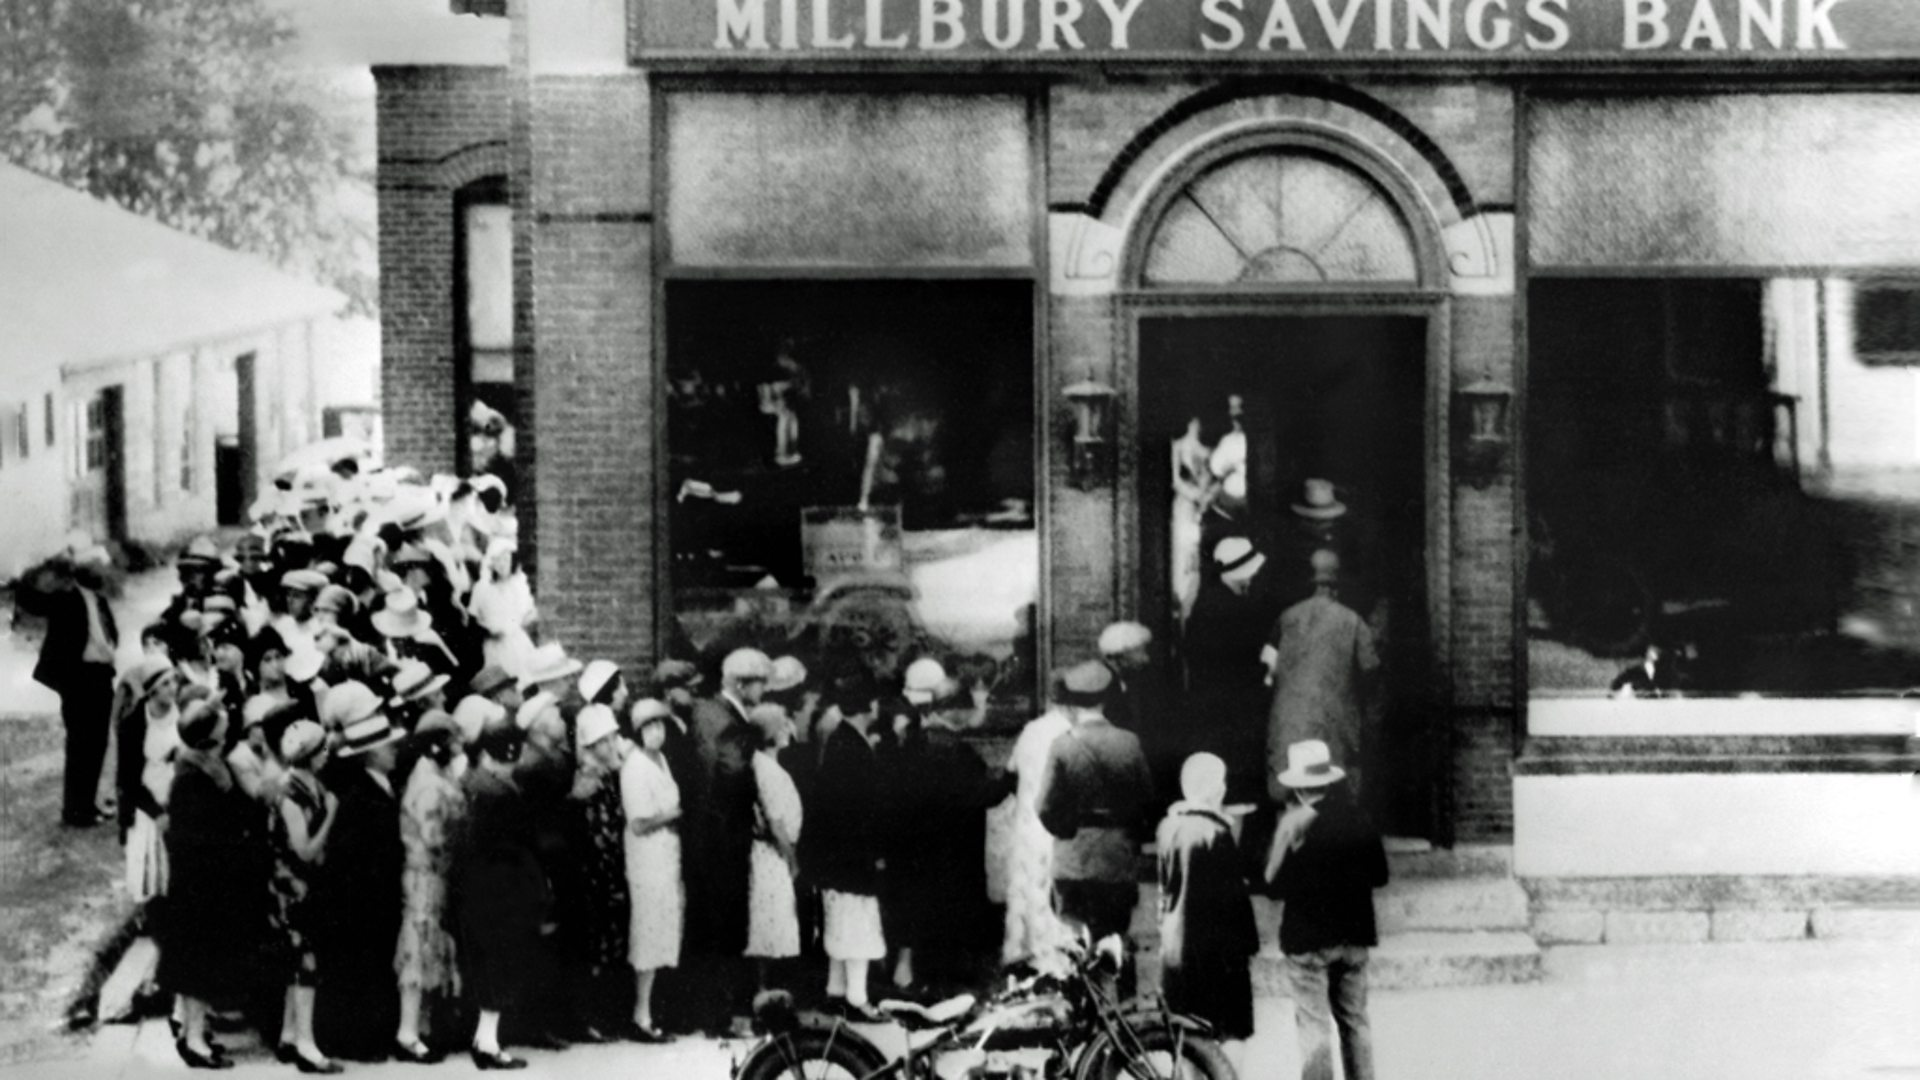 account of the spark of the great depression in america